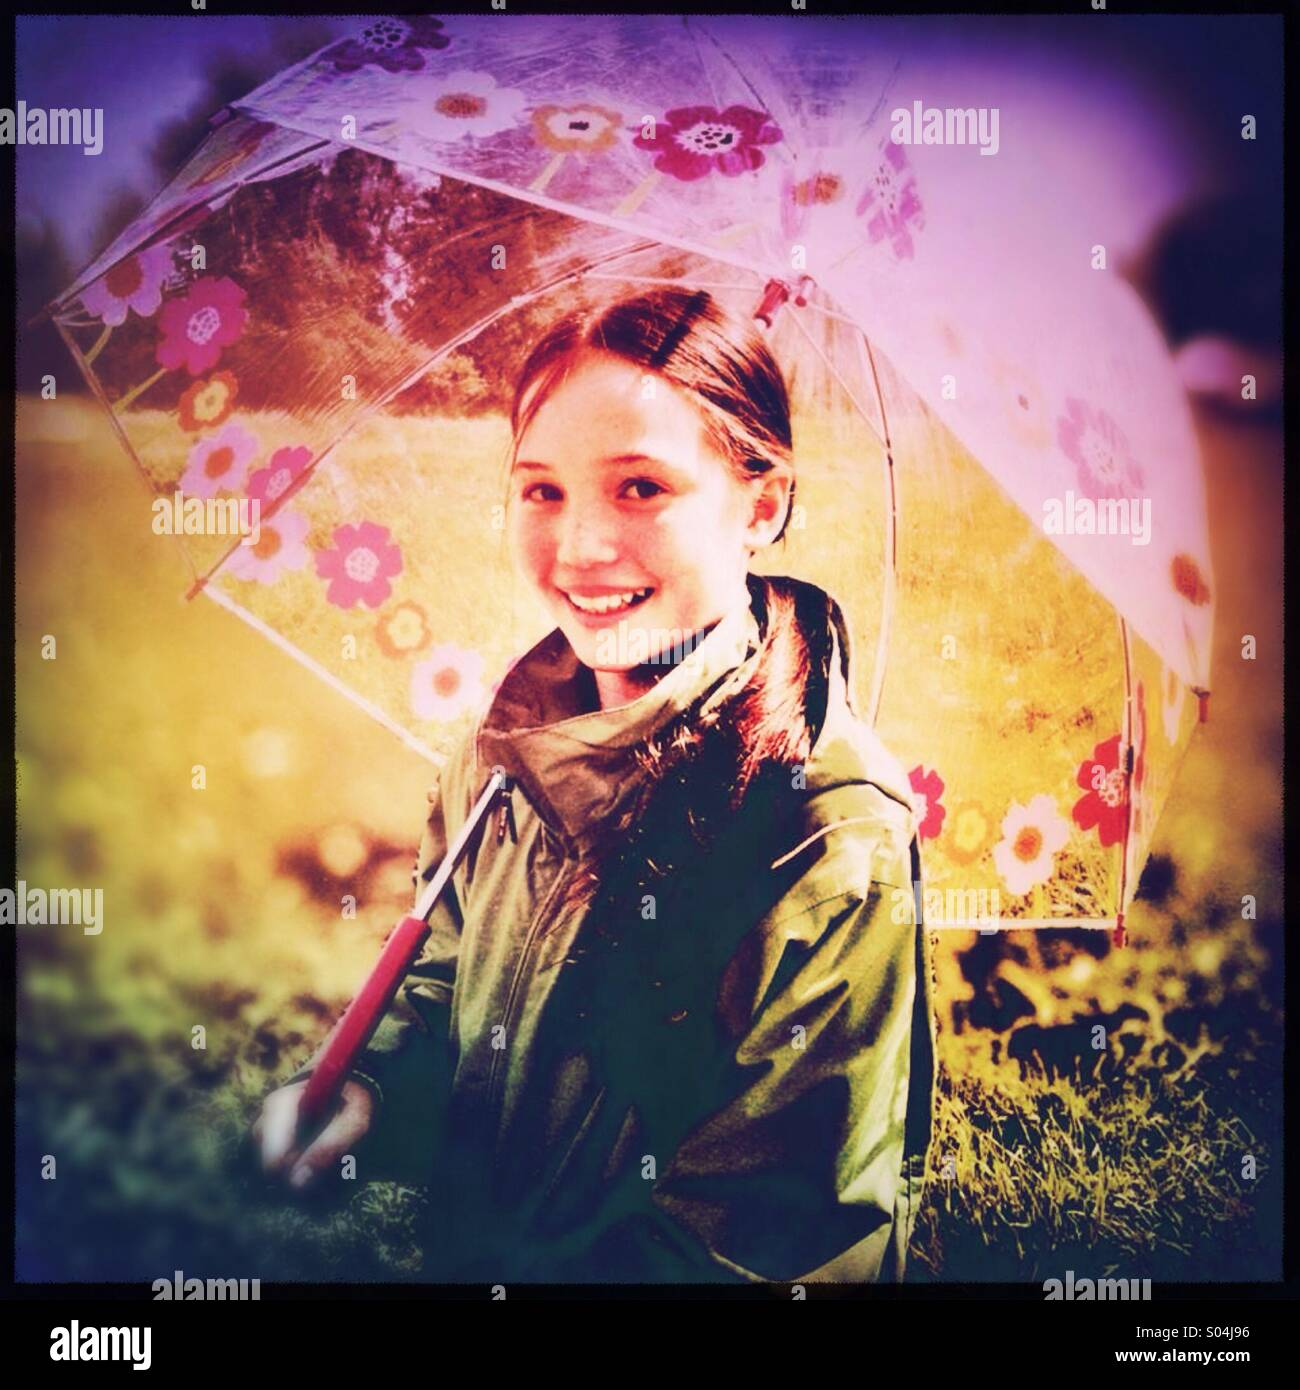 Umbrella Giirl - Stock Image